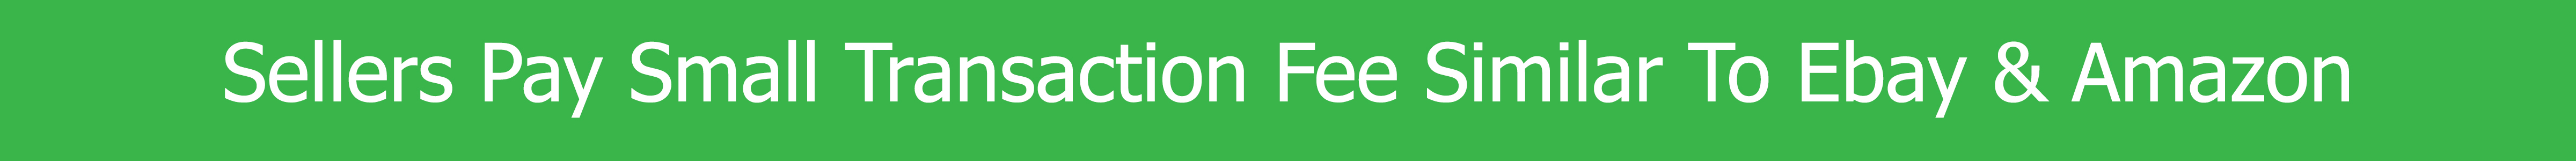 Sellers Pay a Small Transaction Fee